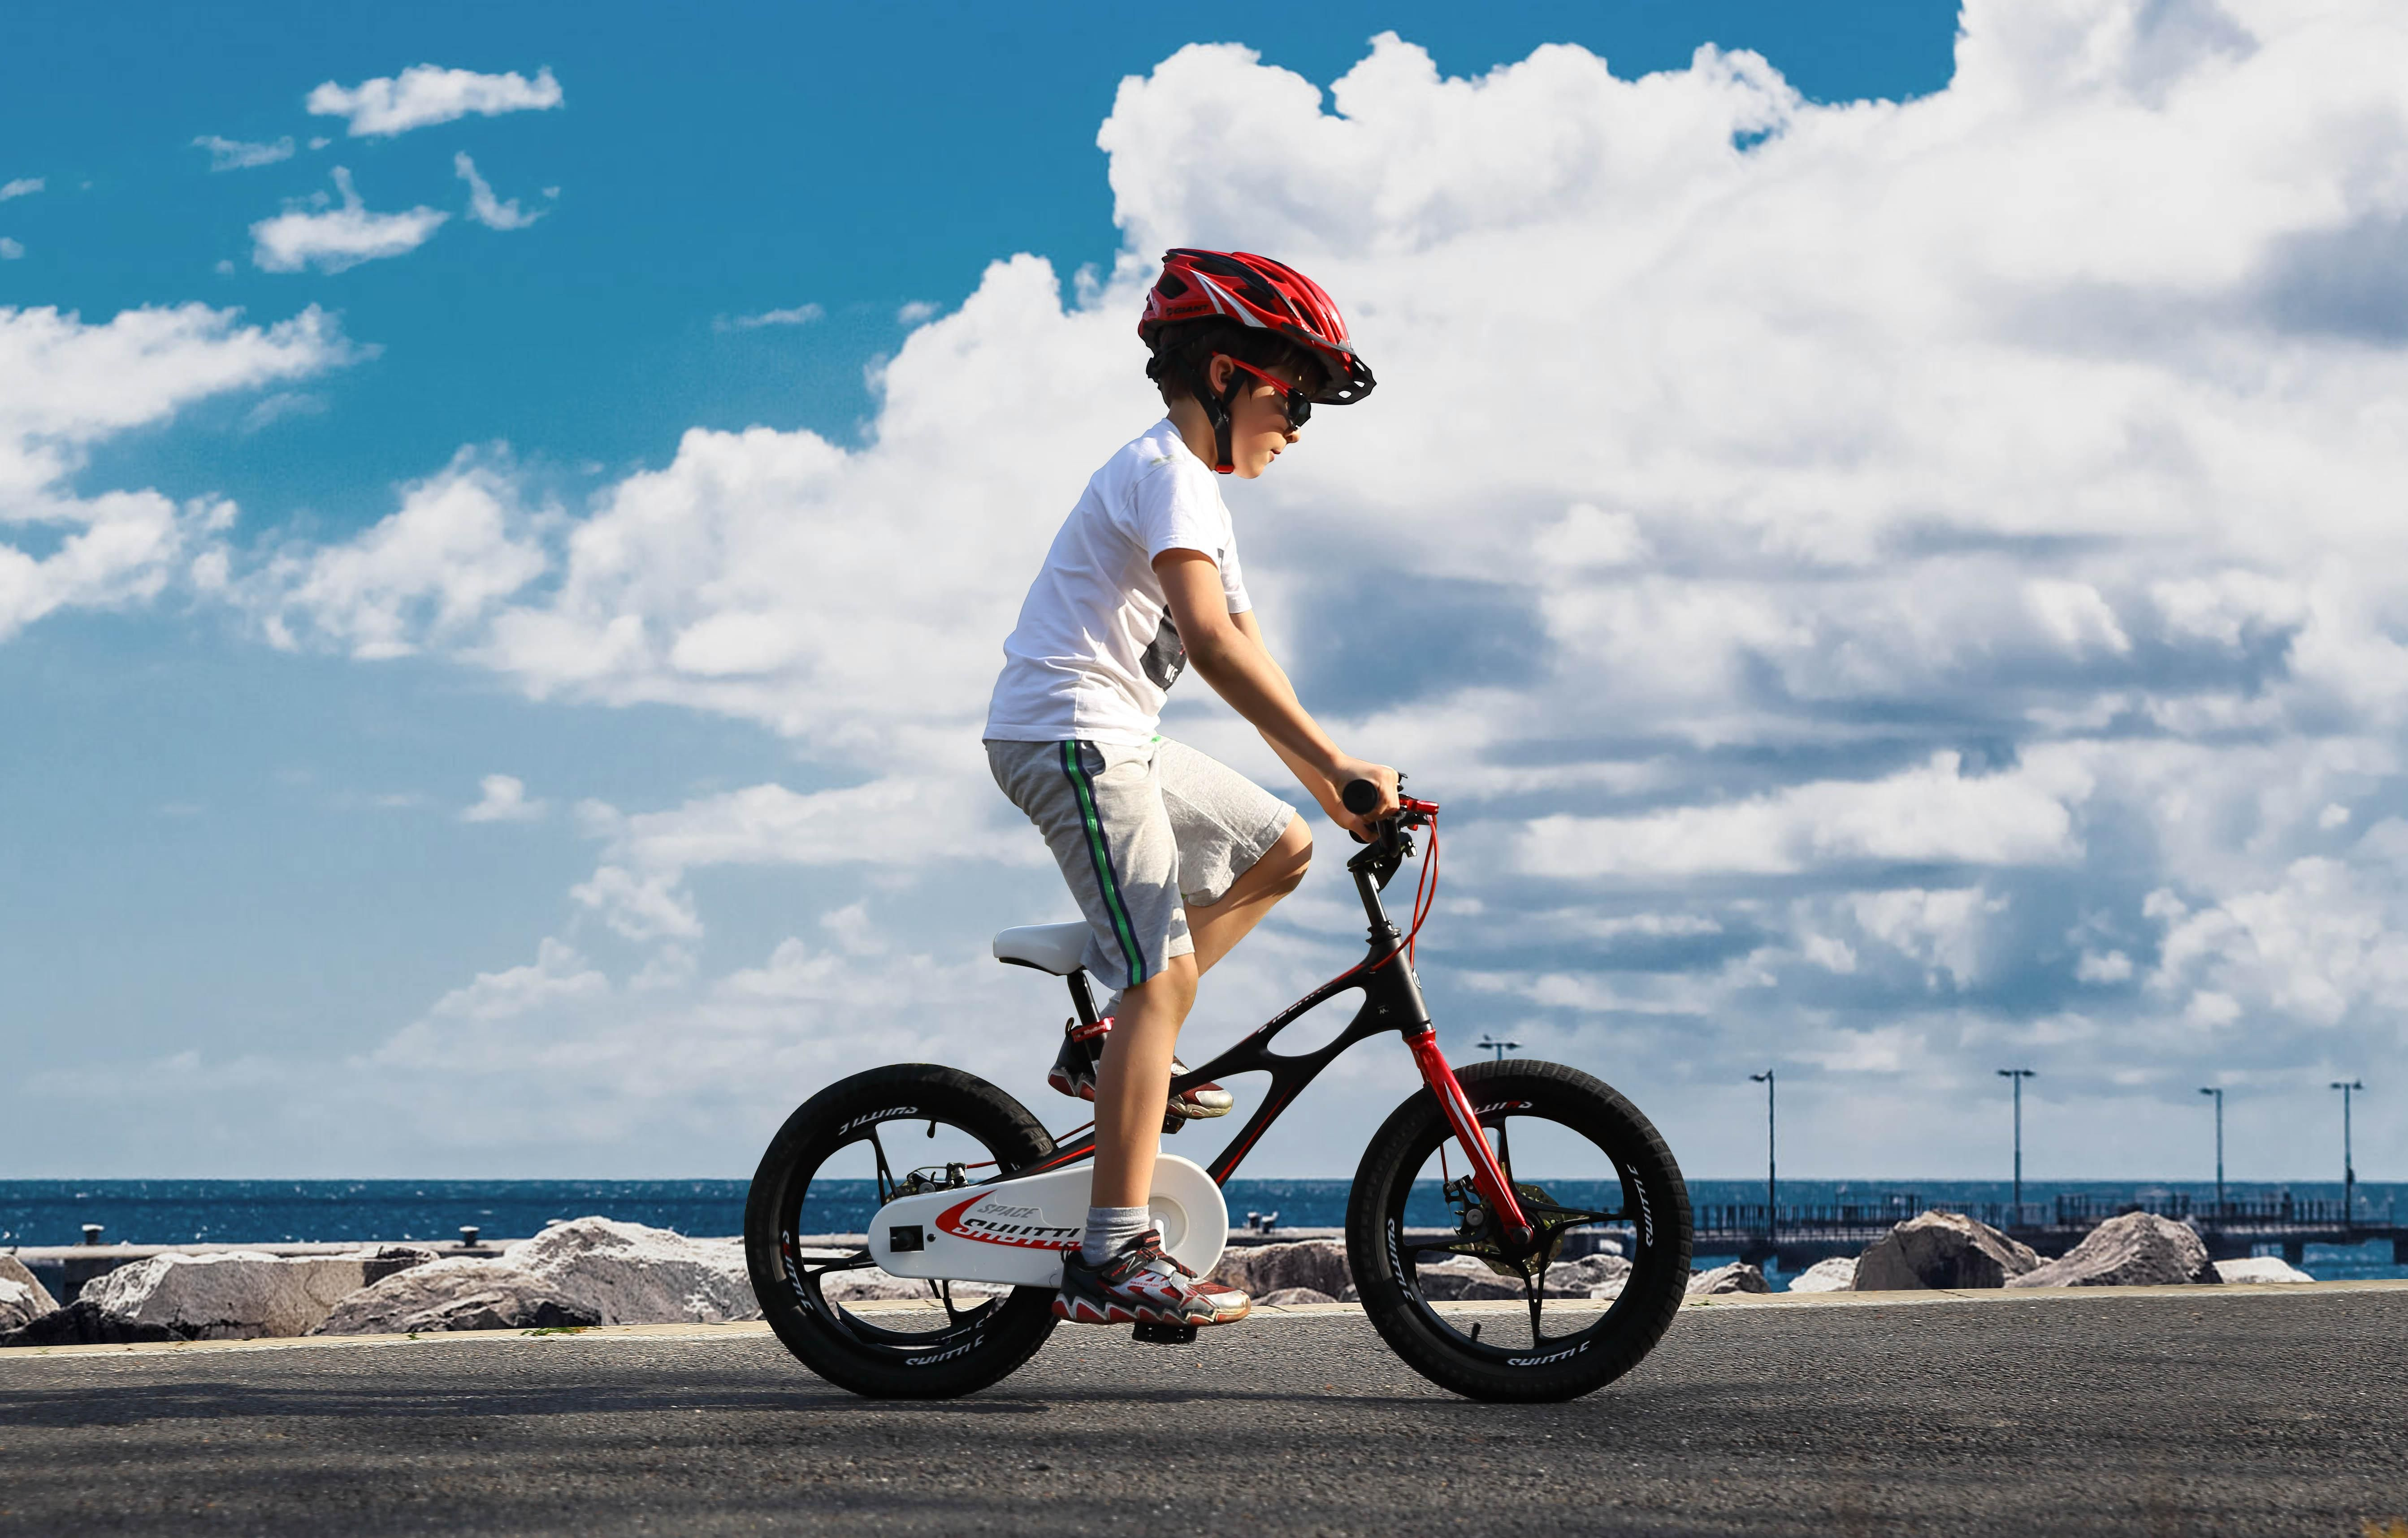 b7b045025fec Amazon.com : RoyalBaby newly-launched Space Shuttle kids bike, lightweight  magnesium frame